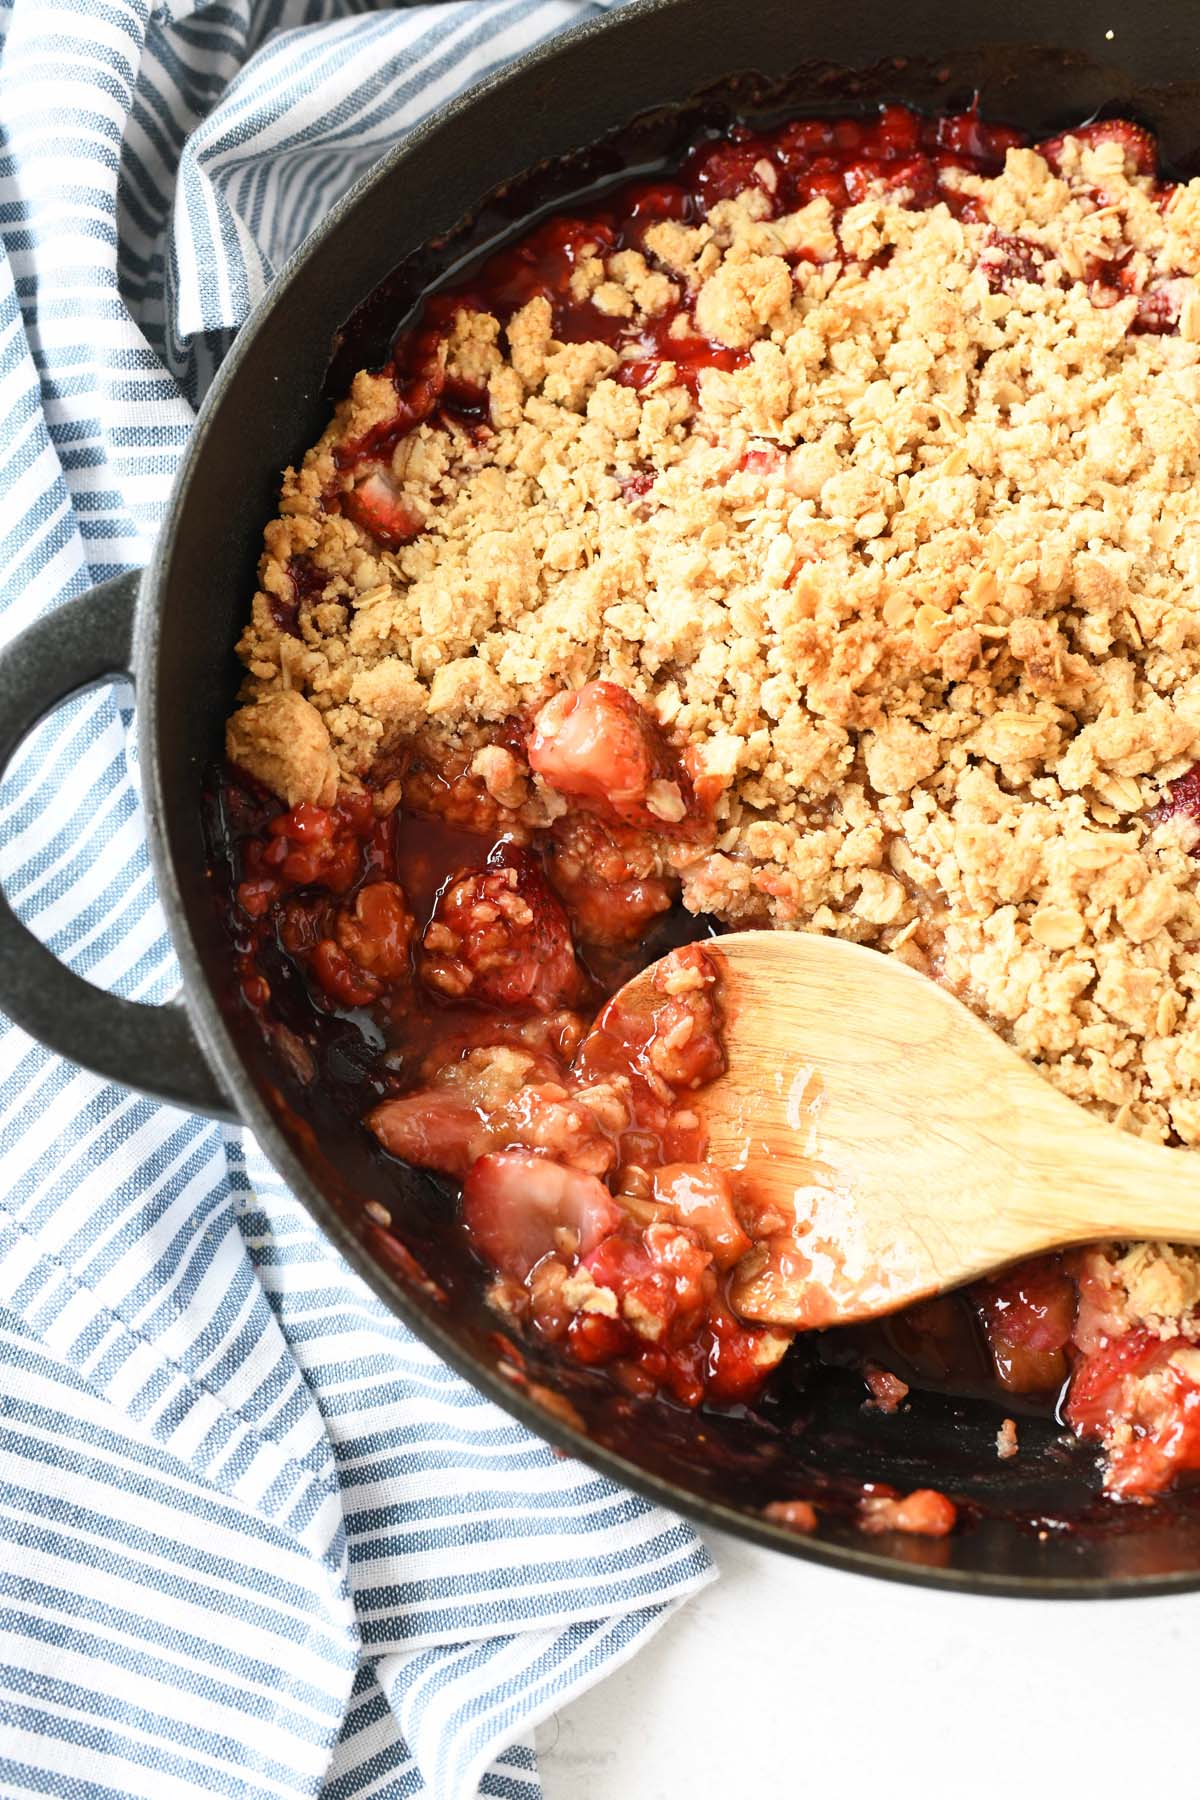 berry rhubarb crisp in cast iron pan with a wooden spoon.